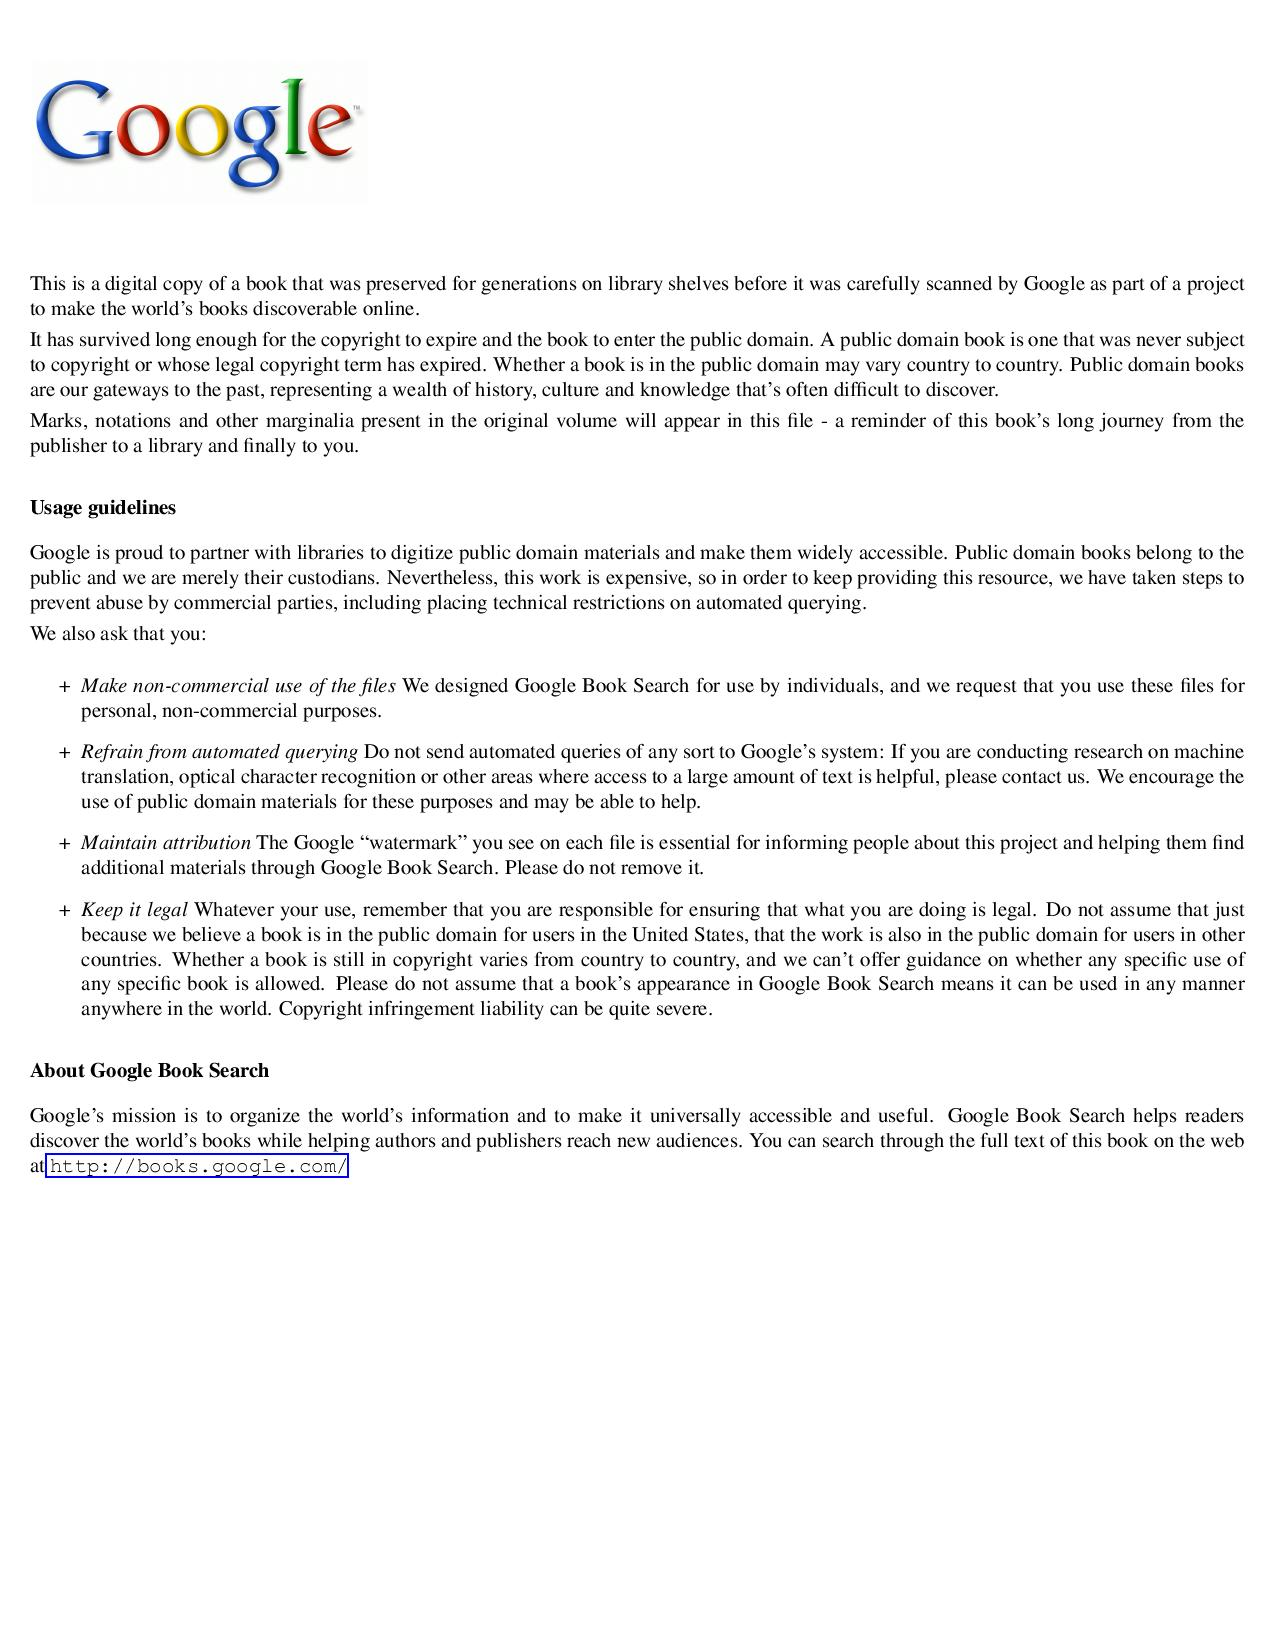 Cover of edition talisman00scotgoog